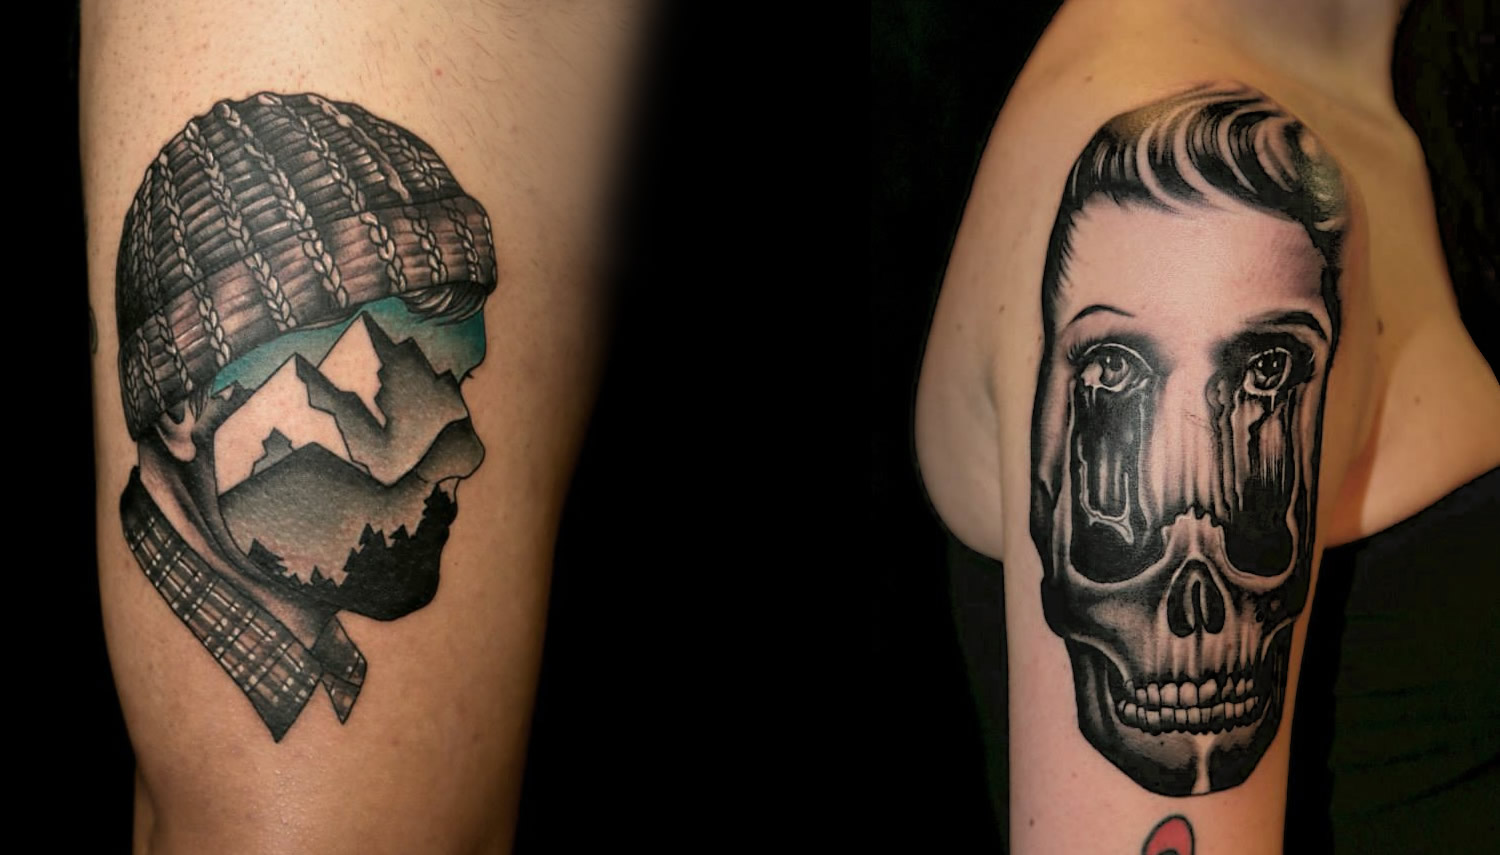 mountain man with knitted hat (illusional) tattoo, + woman's face melting into skull by pietro sedda